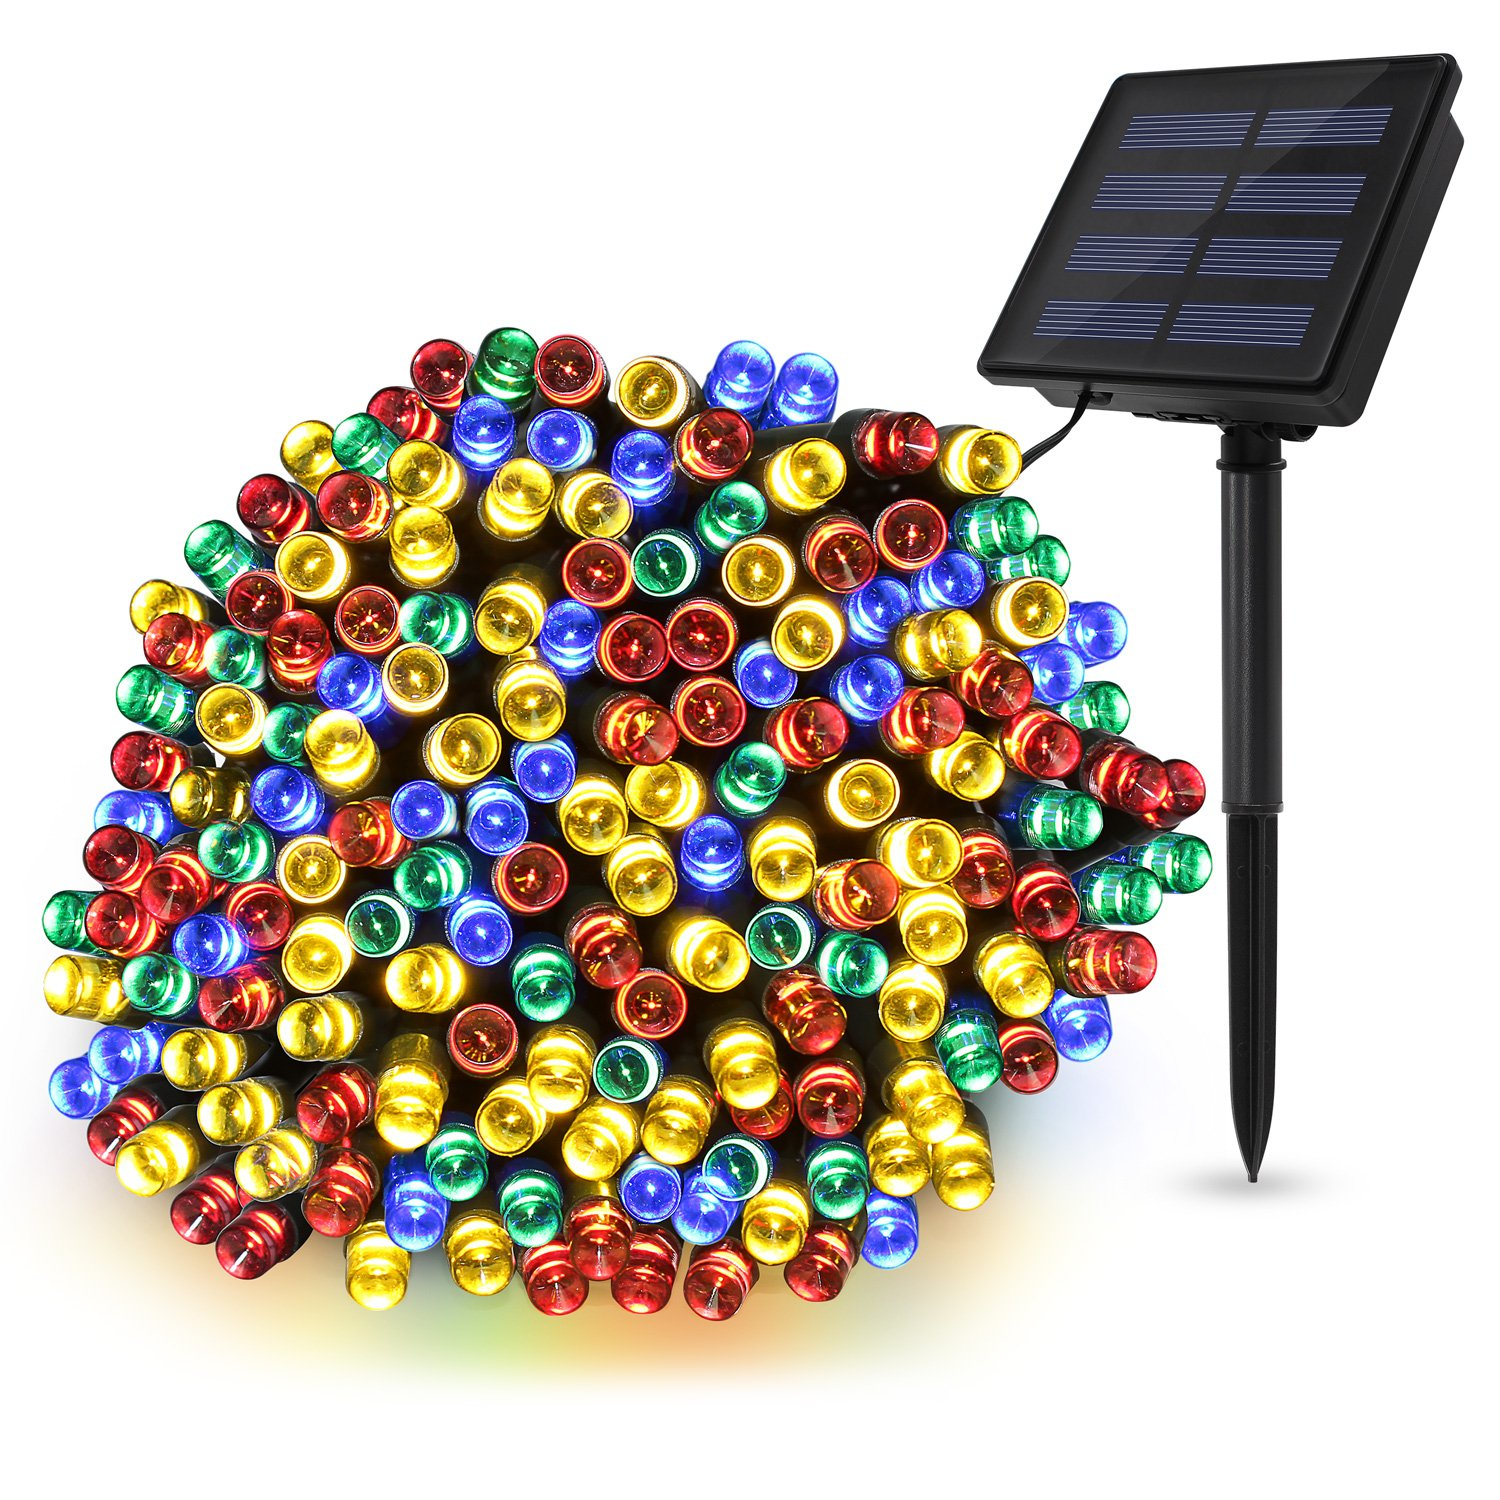 TECBOX Solar String Light String 72ft 200 LED Dimmable Fairy String Lights Ambiance lighting for Outdoor, Indoor Weatherproof (Multi Color)